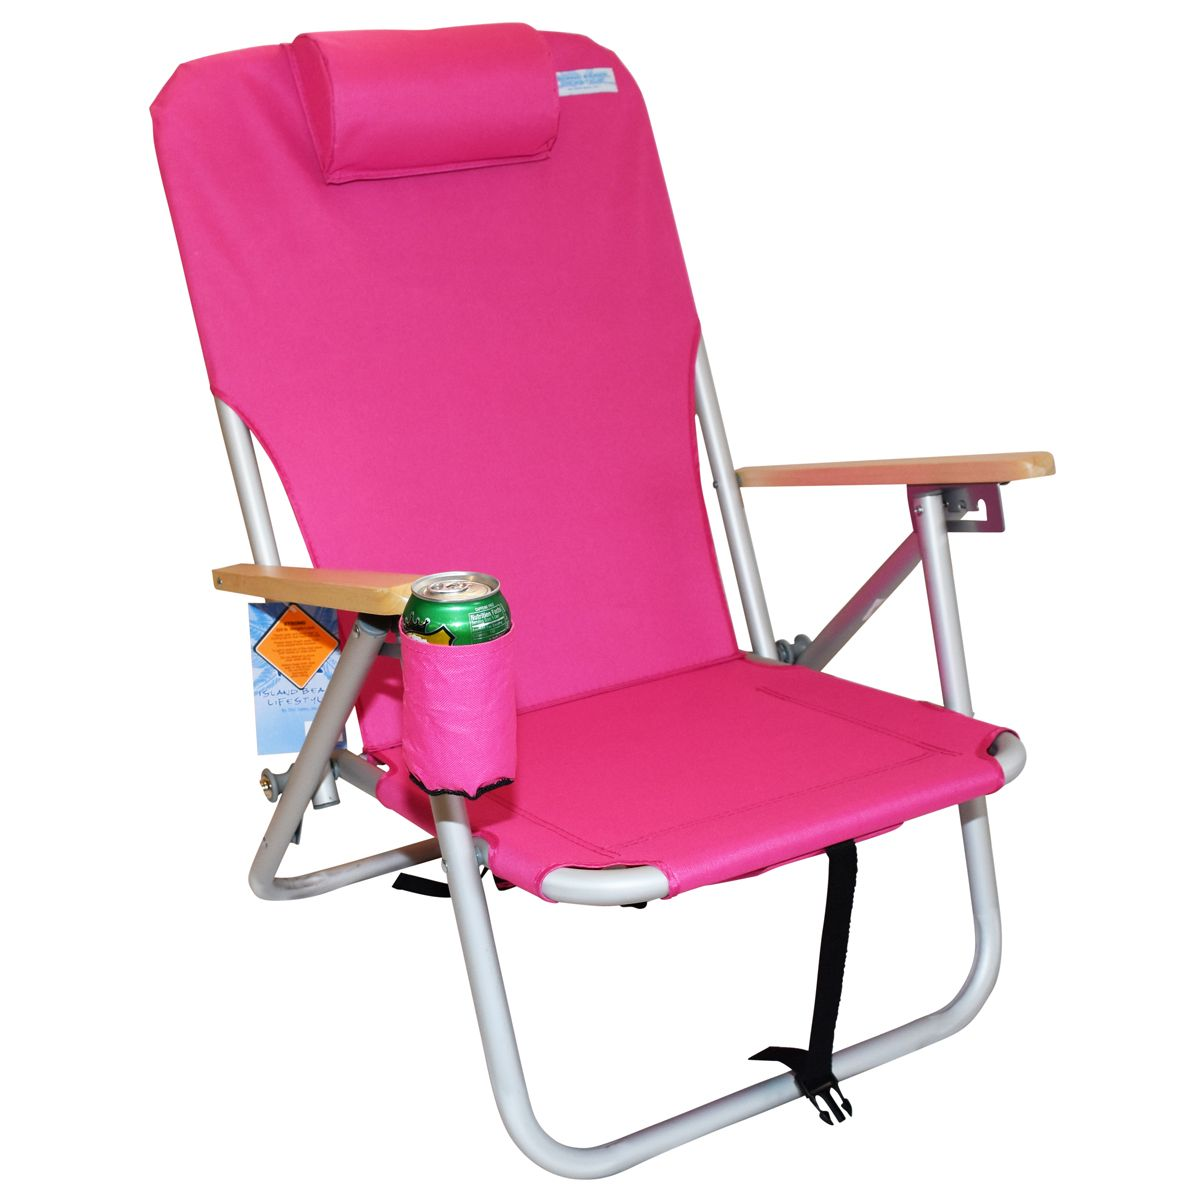 Beach Chair Pillow With Strap Target Armchair And Ottoman 4 Positions Shoulder Pink Product 15095 Brand Copa Lightweight Aluminum Sitting Wooden Arms Cup Holder